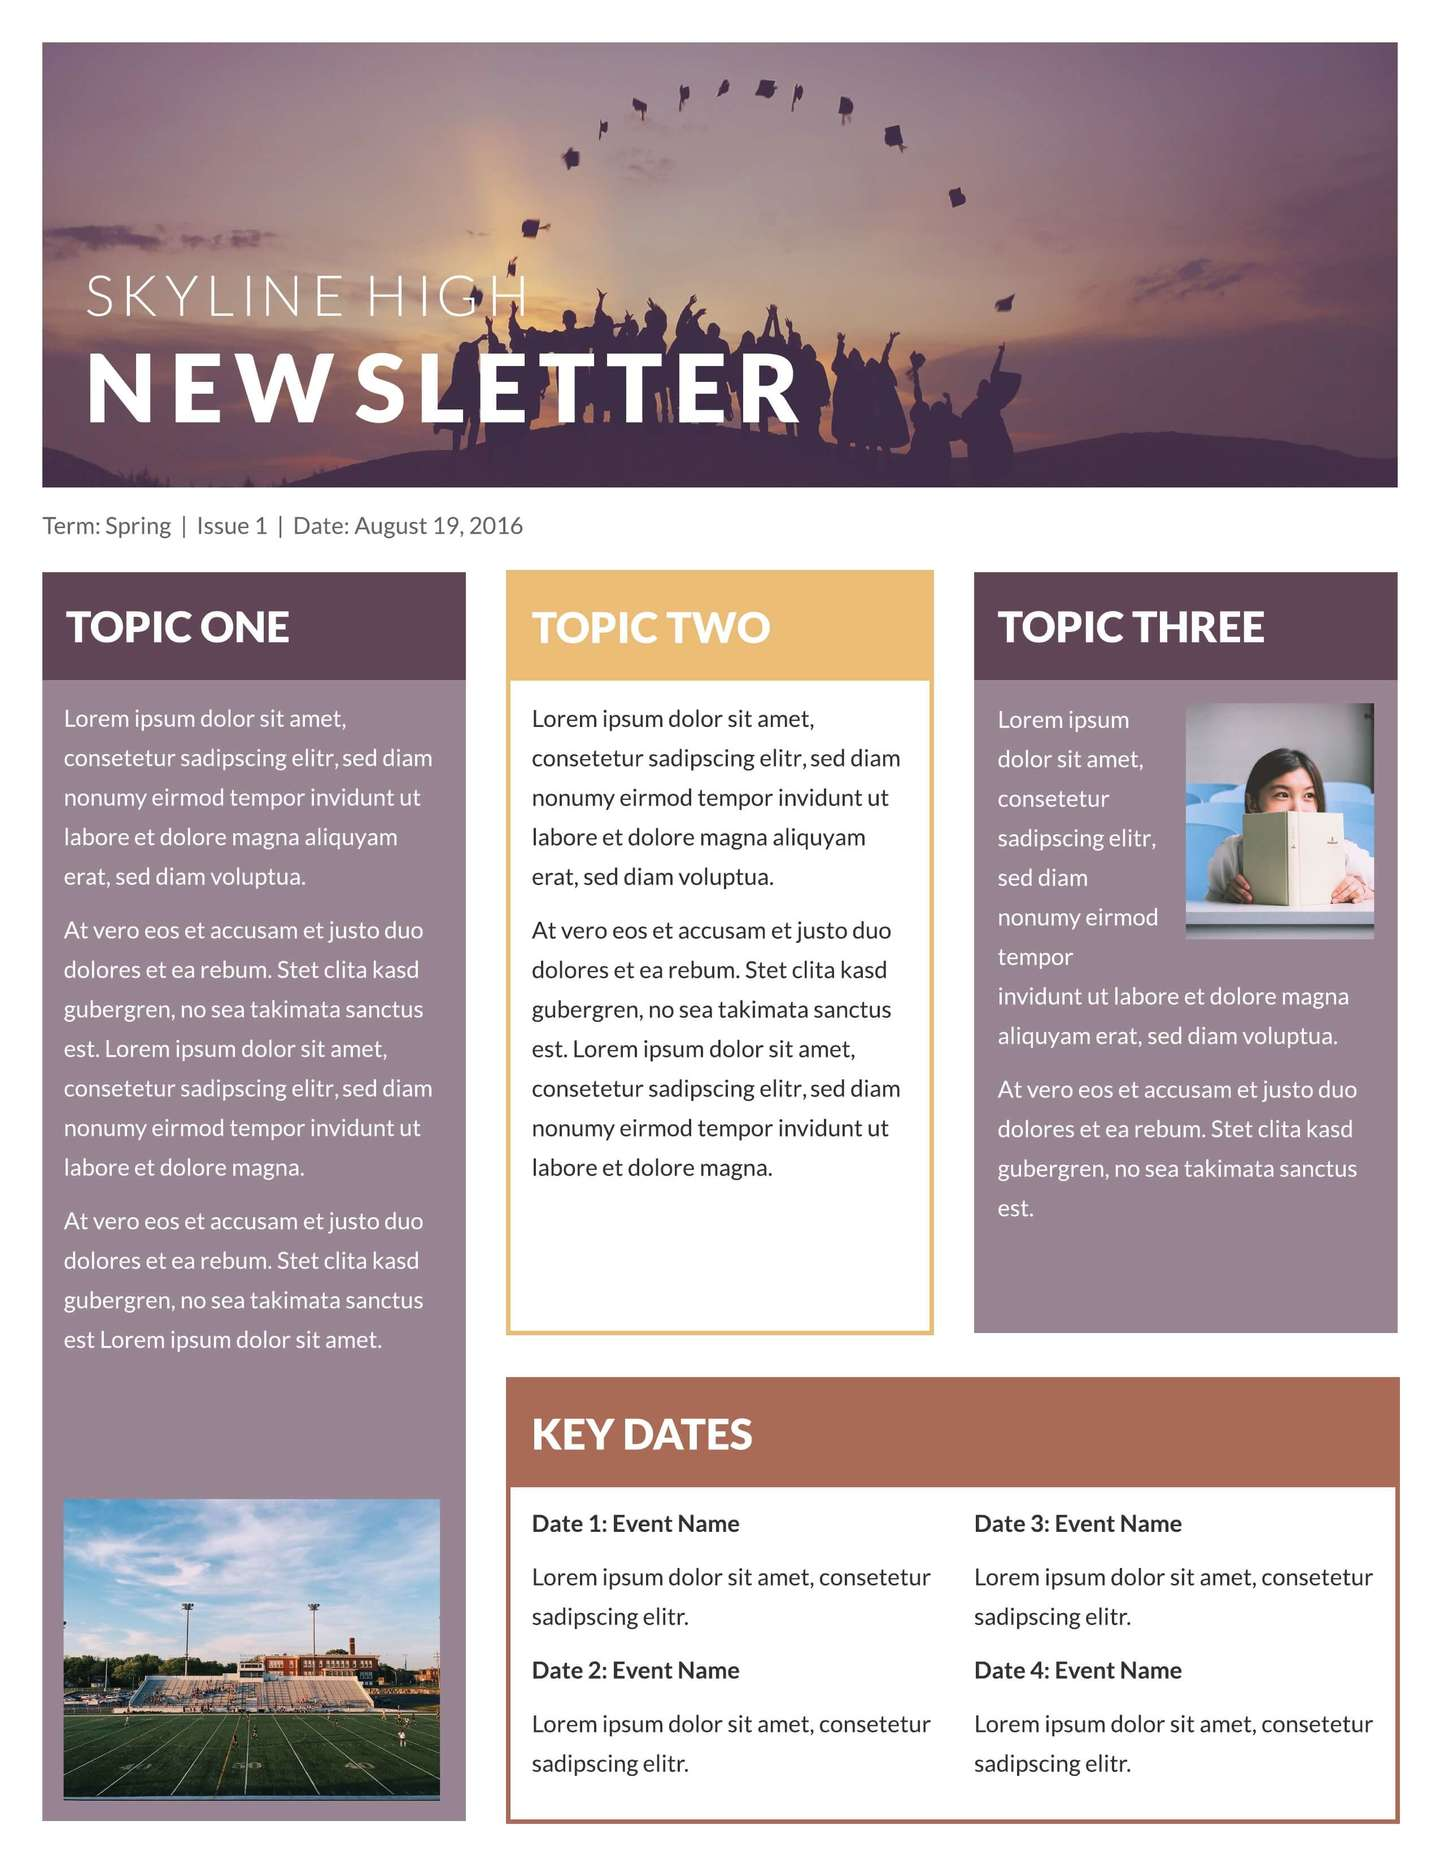 skyline high classroom newsletter template - Free Email Newsletter Templates